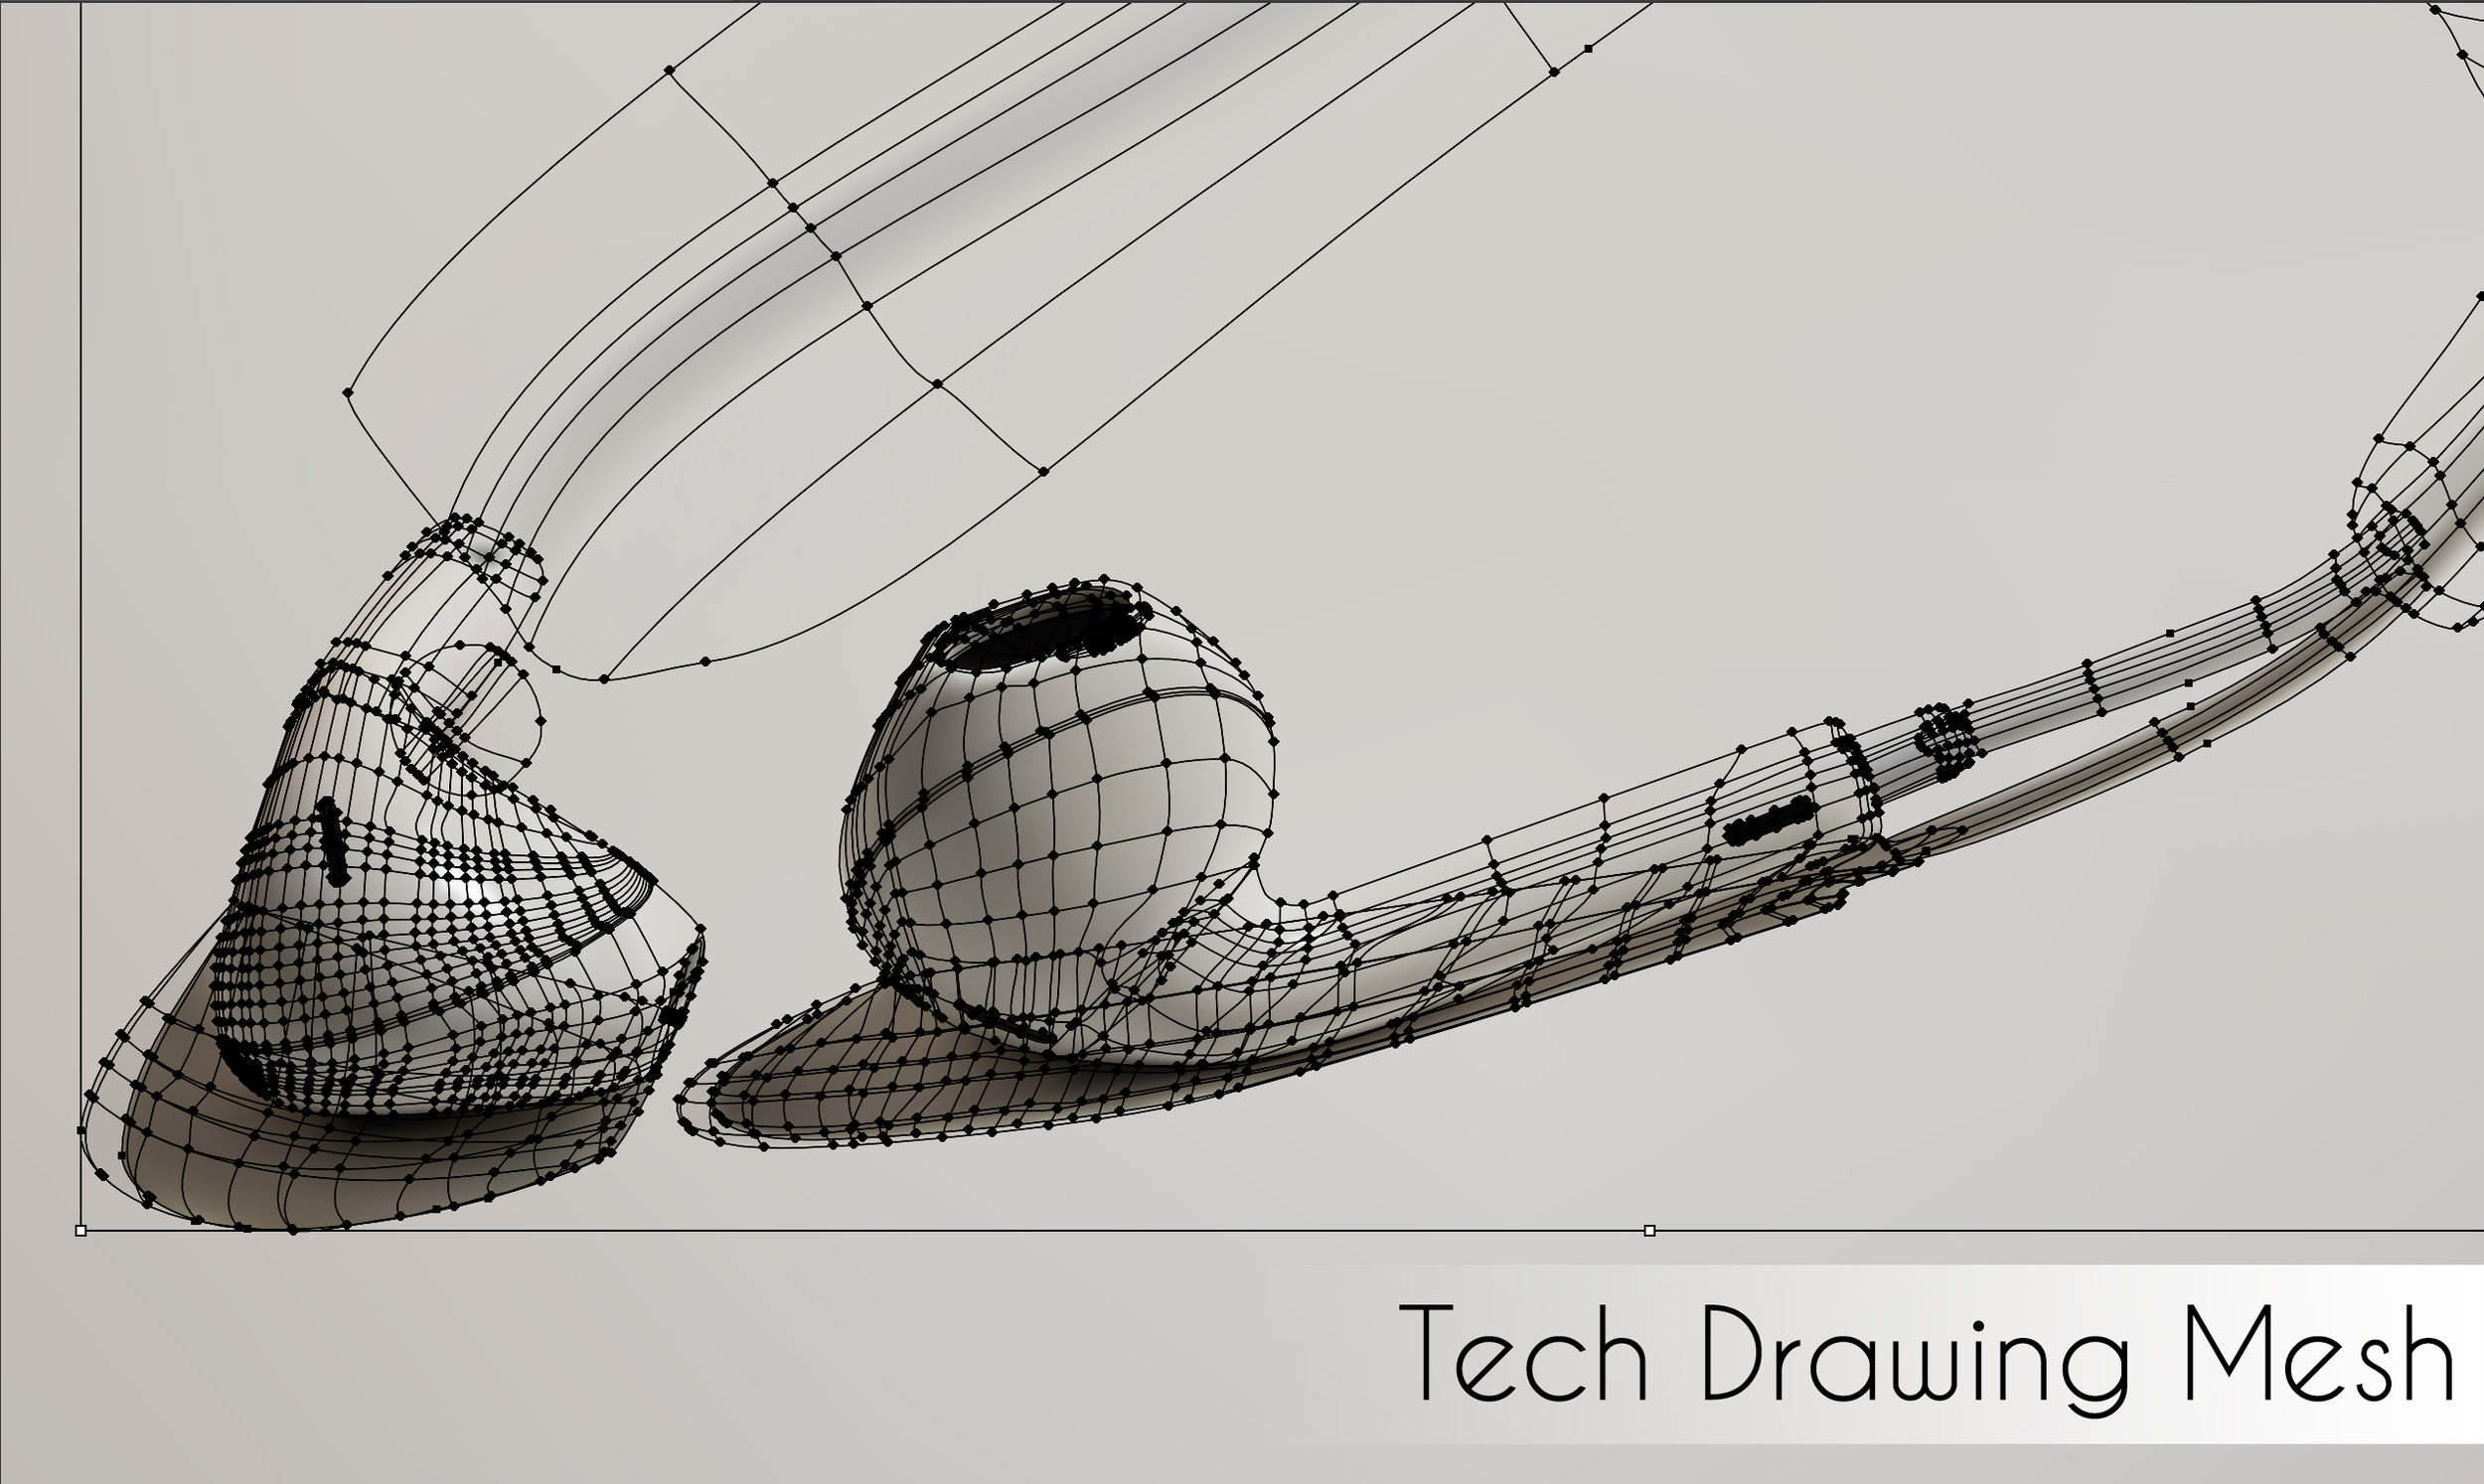 TechDrawing - Mesh1.jpg